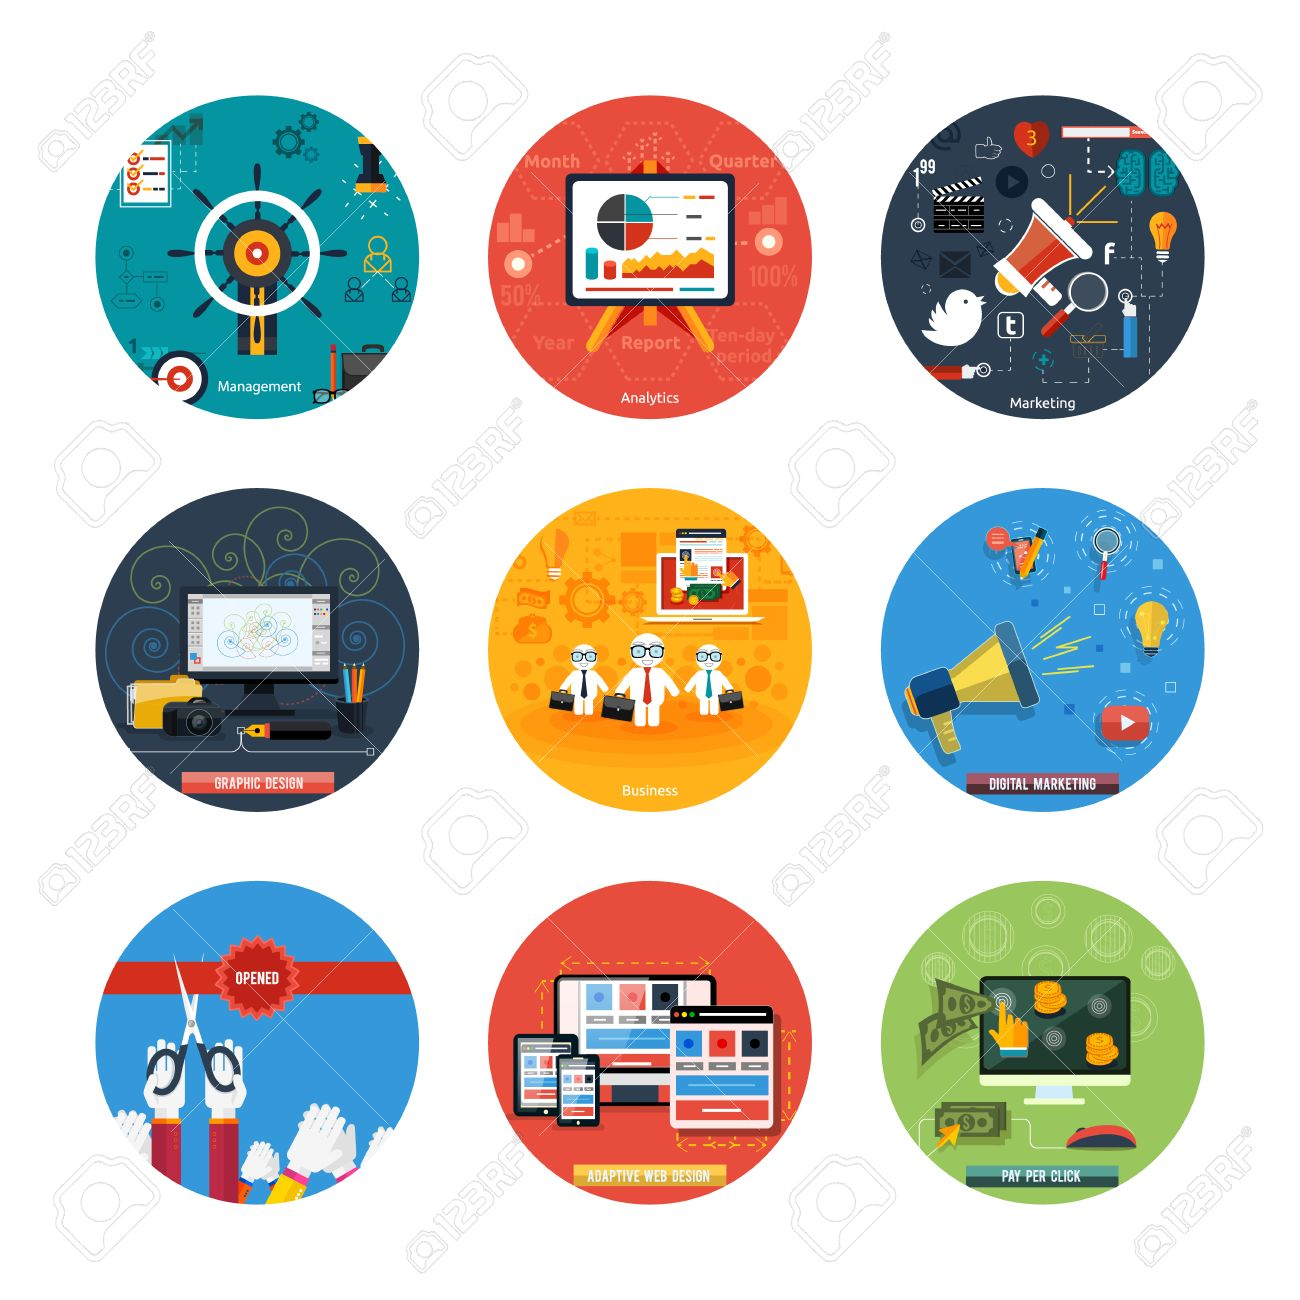 Icons For Web Design Seo Social Media And Pay Per Click Internet Royalty Free Cliparts Vectors And Stock Illustration Image 31706704